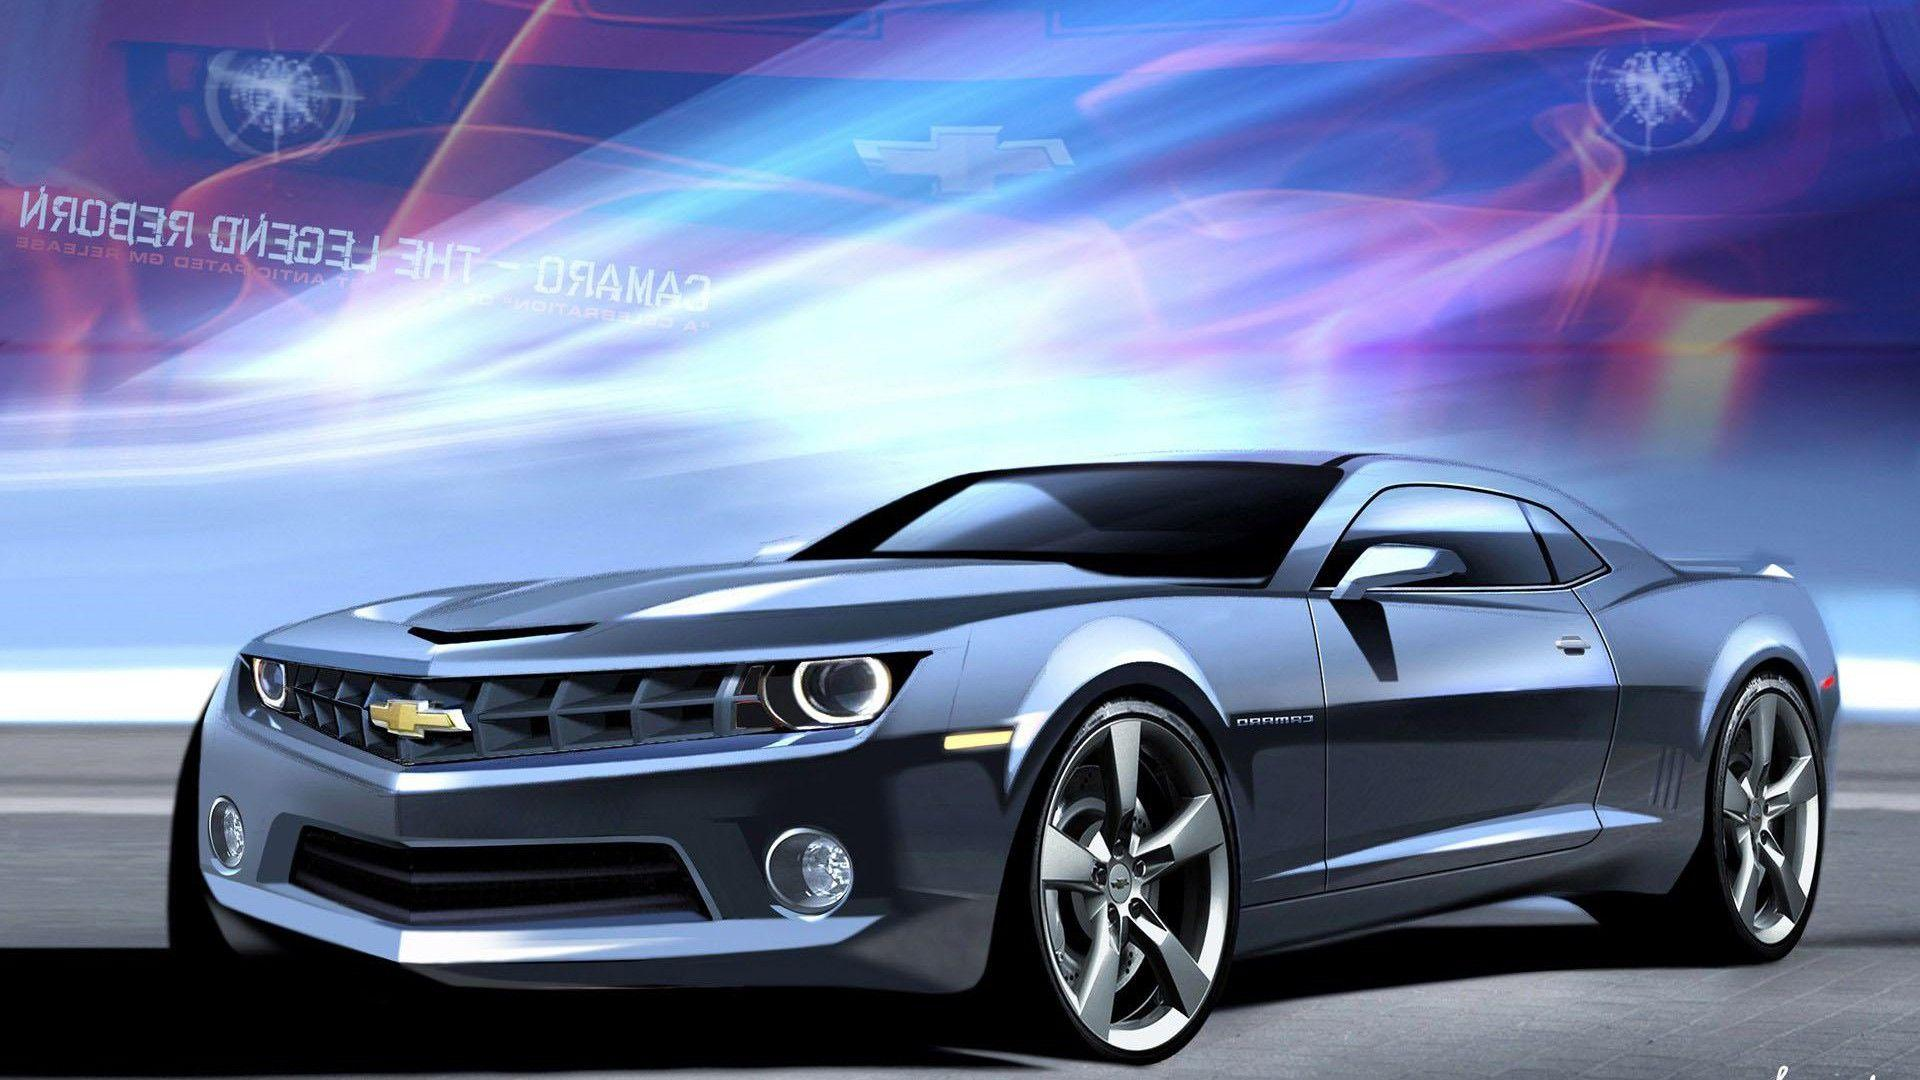 Chevy Camaro Wallpapers Wallpaper Cave